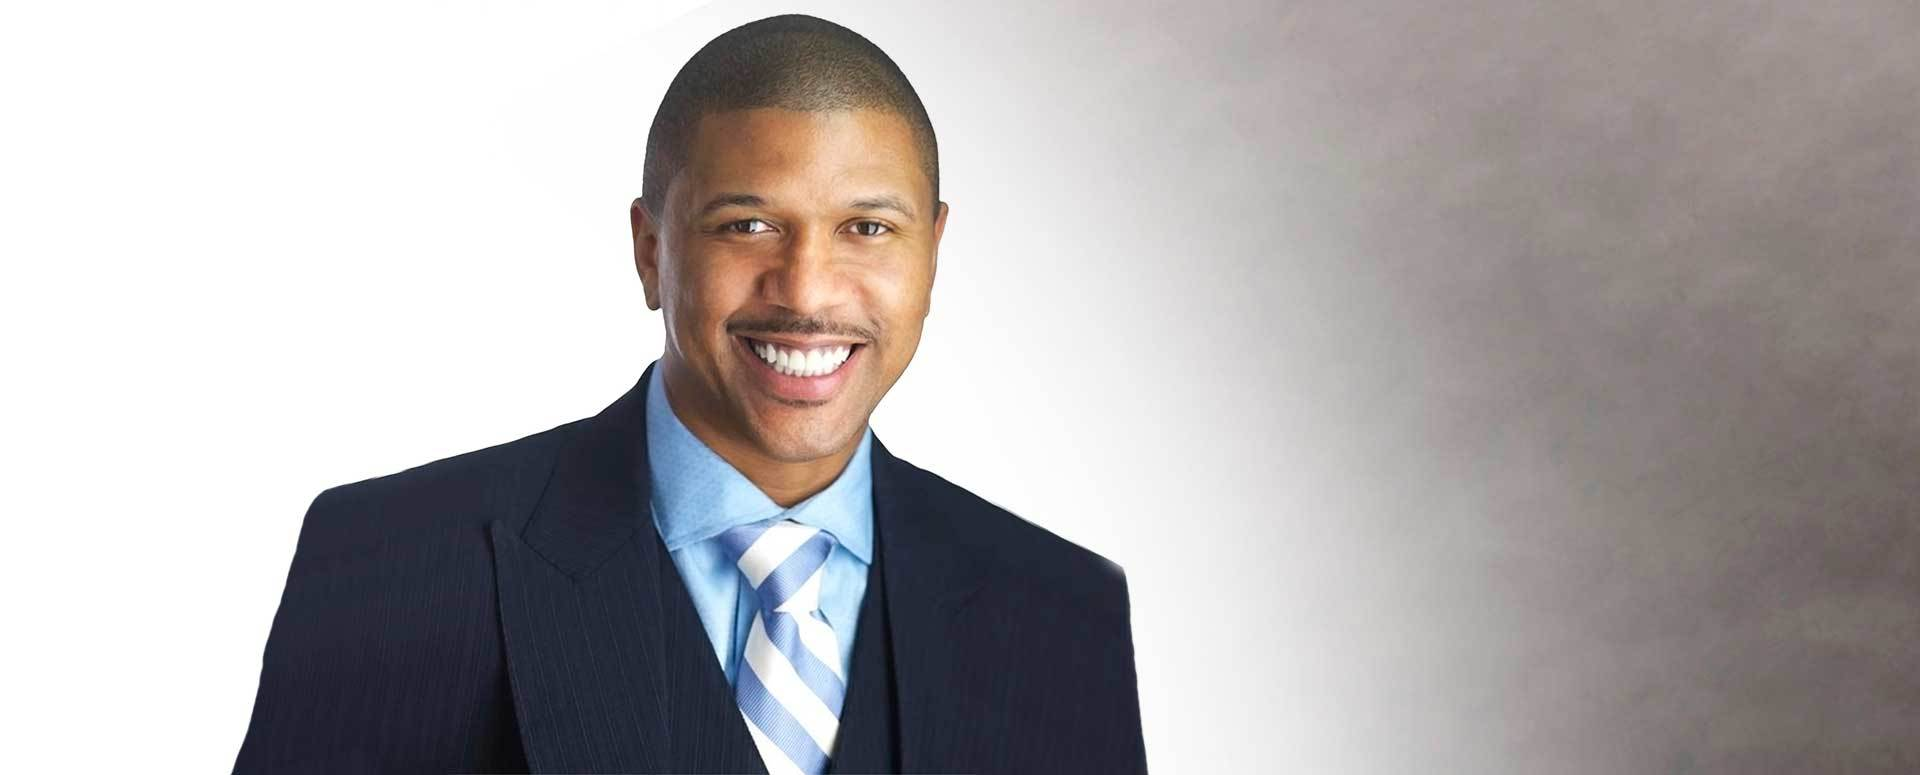 Book Jalen Rose for Speaking Events and Appearances